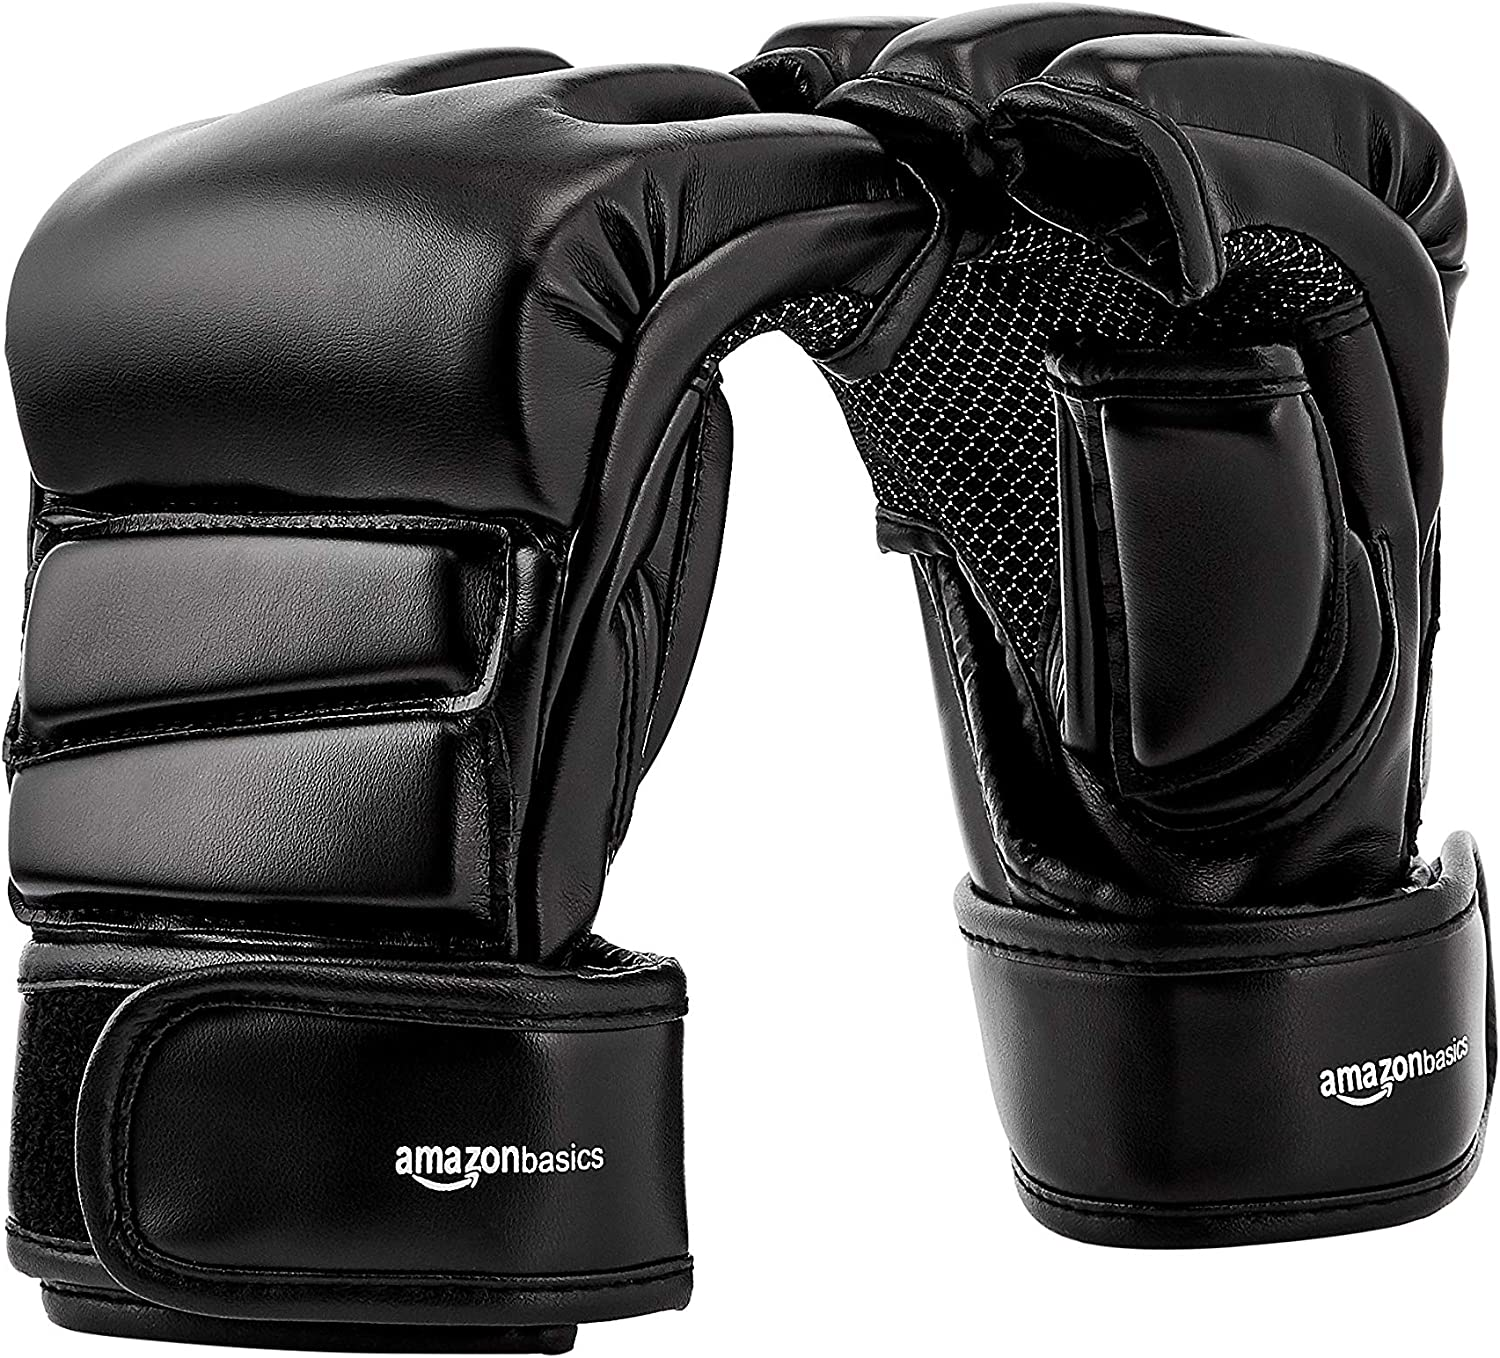 Amazon Basics MMA Gloves